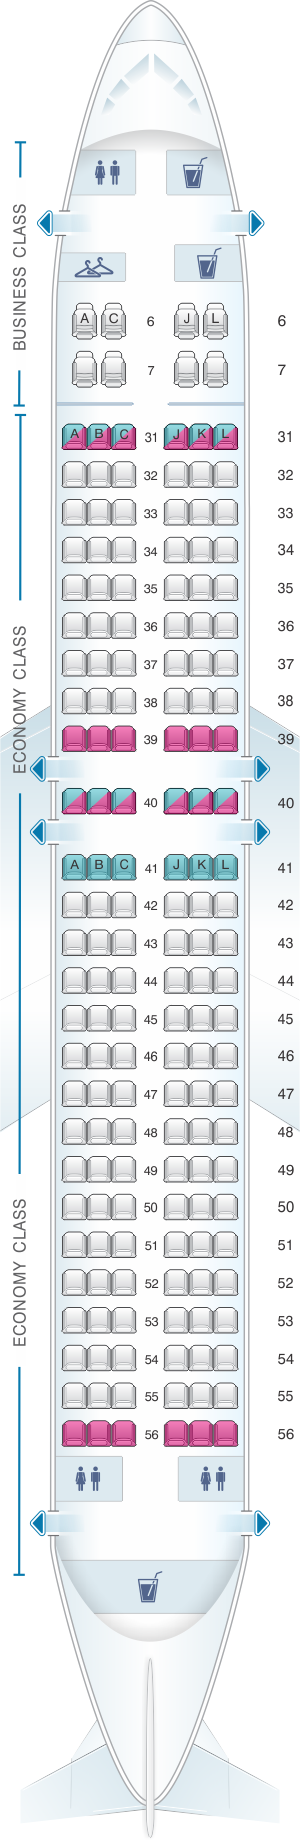 Seat Map China Eastern Airlines Boeing B737 800 164PAX ... China Eastern Airlines Seat Map on etihad airlines seat map, american airlines seat map, china airlines 777-300 economy, china eastern airlines business class, united airlines seat map, china southern airlines seat map, air china seat map, japan airlines seat map, china airlines 777-300er, iberia airlines seat map, copa airlines seat map, shanghai airlines seat map, china airlines seat selection, garuda airlines seat map, lan airlines seat map, south african airlines seat map, ethiopian airlines seat map, croatia airlines seat map, china eastern airlines route map, china eastern airlines seat assignment,